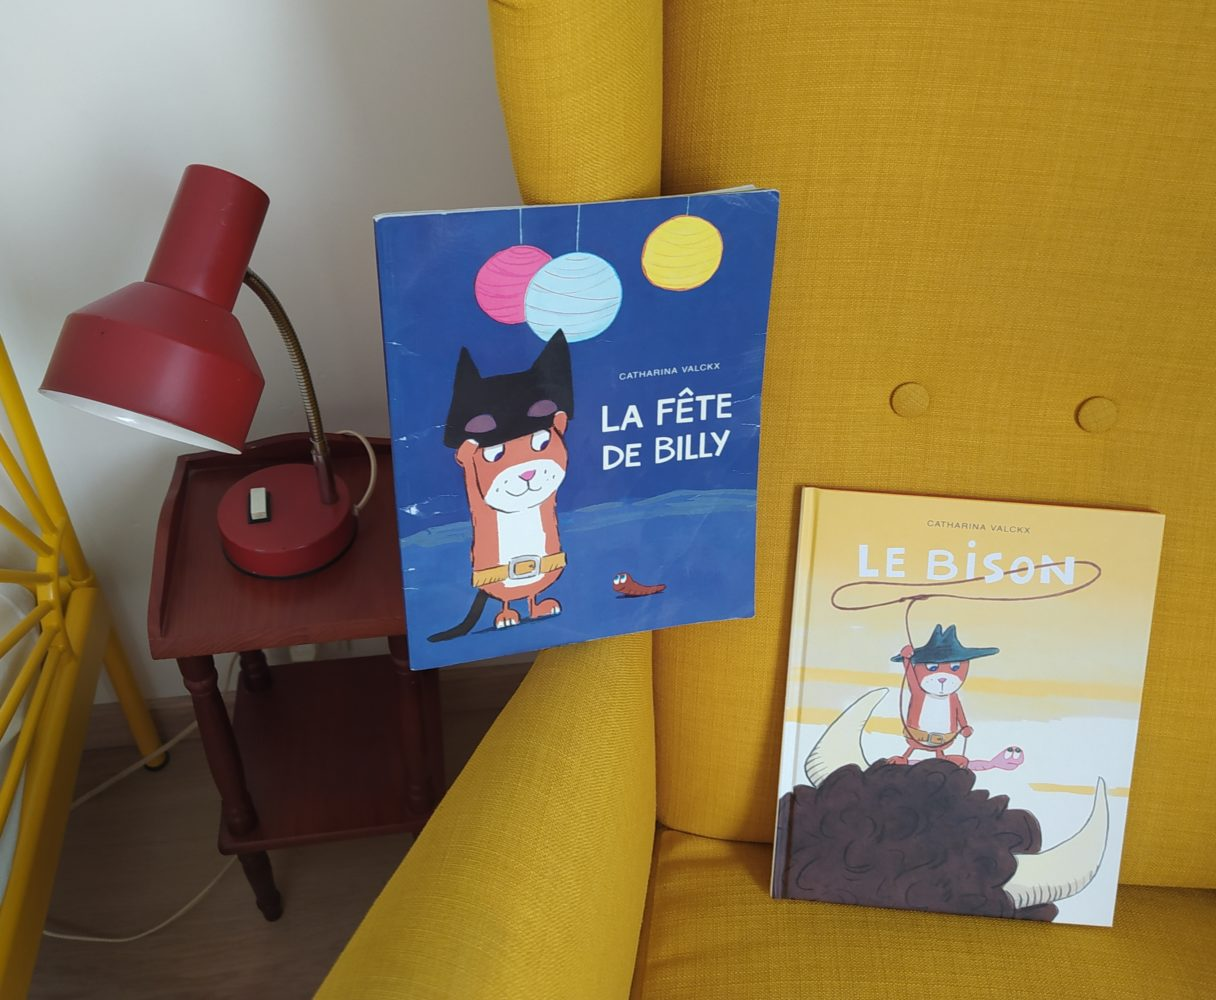 La fête de Billy • Catharina Valckx